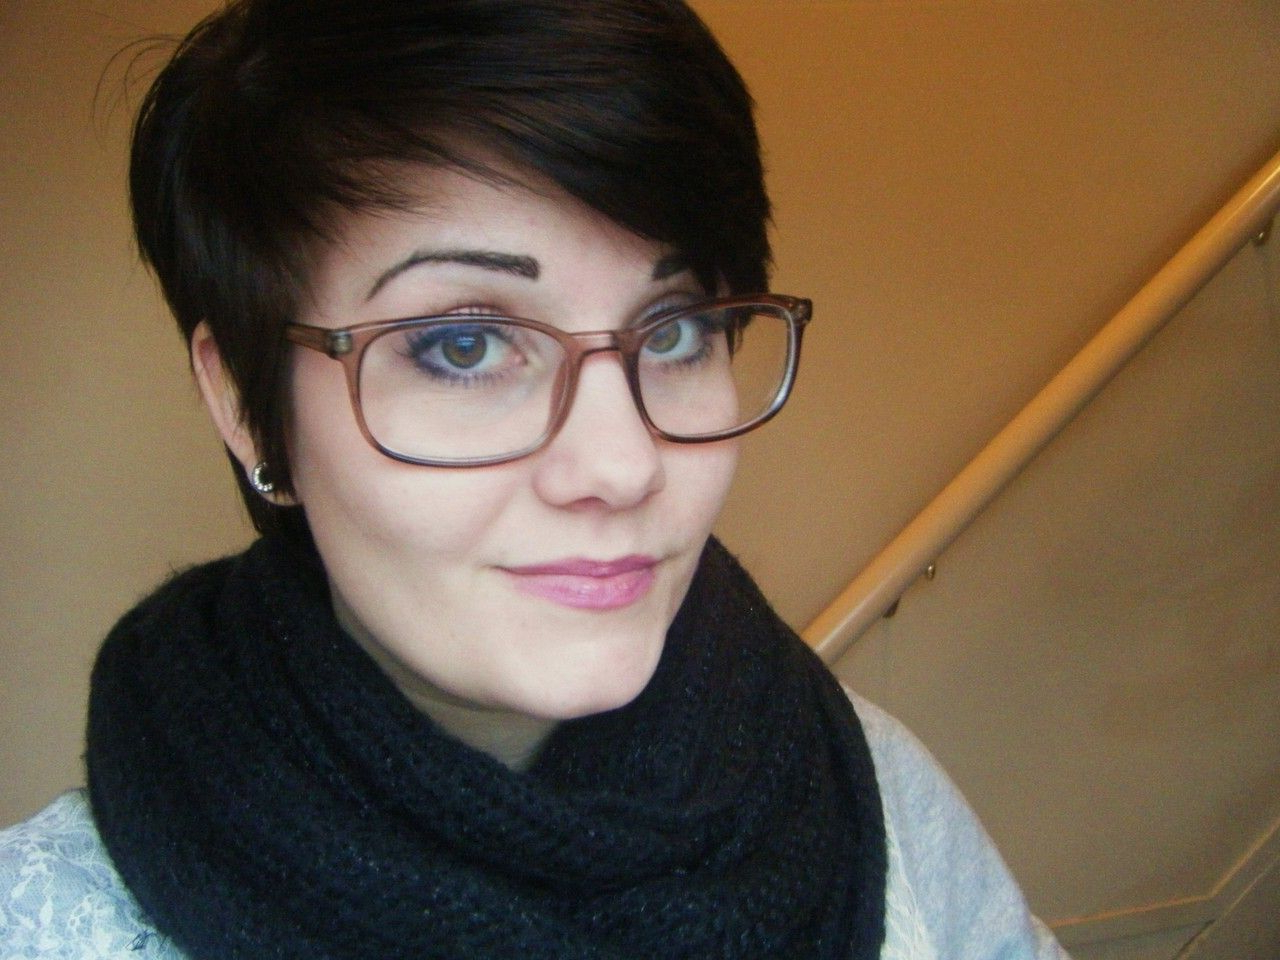 Seeing A Lot Of Asymmetrical Bangs For Glasses Wearers | Chop Chop Inside Short Hairstyles For Glasses Wearers (View 2 of 25)